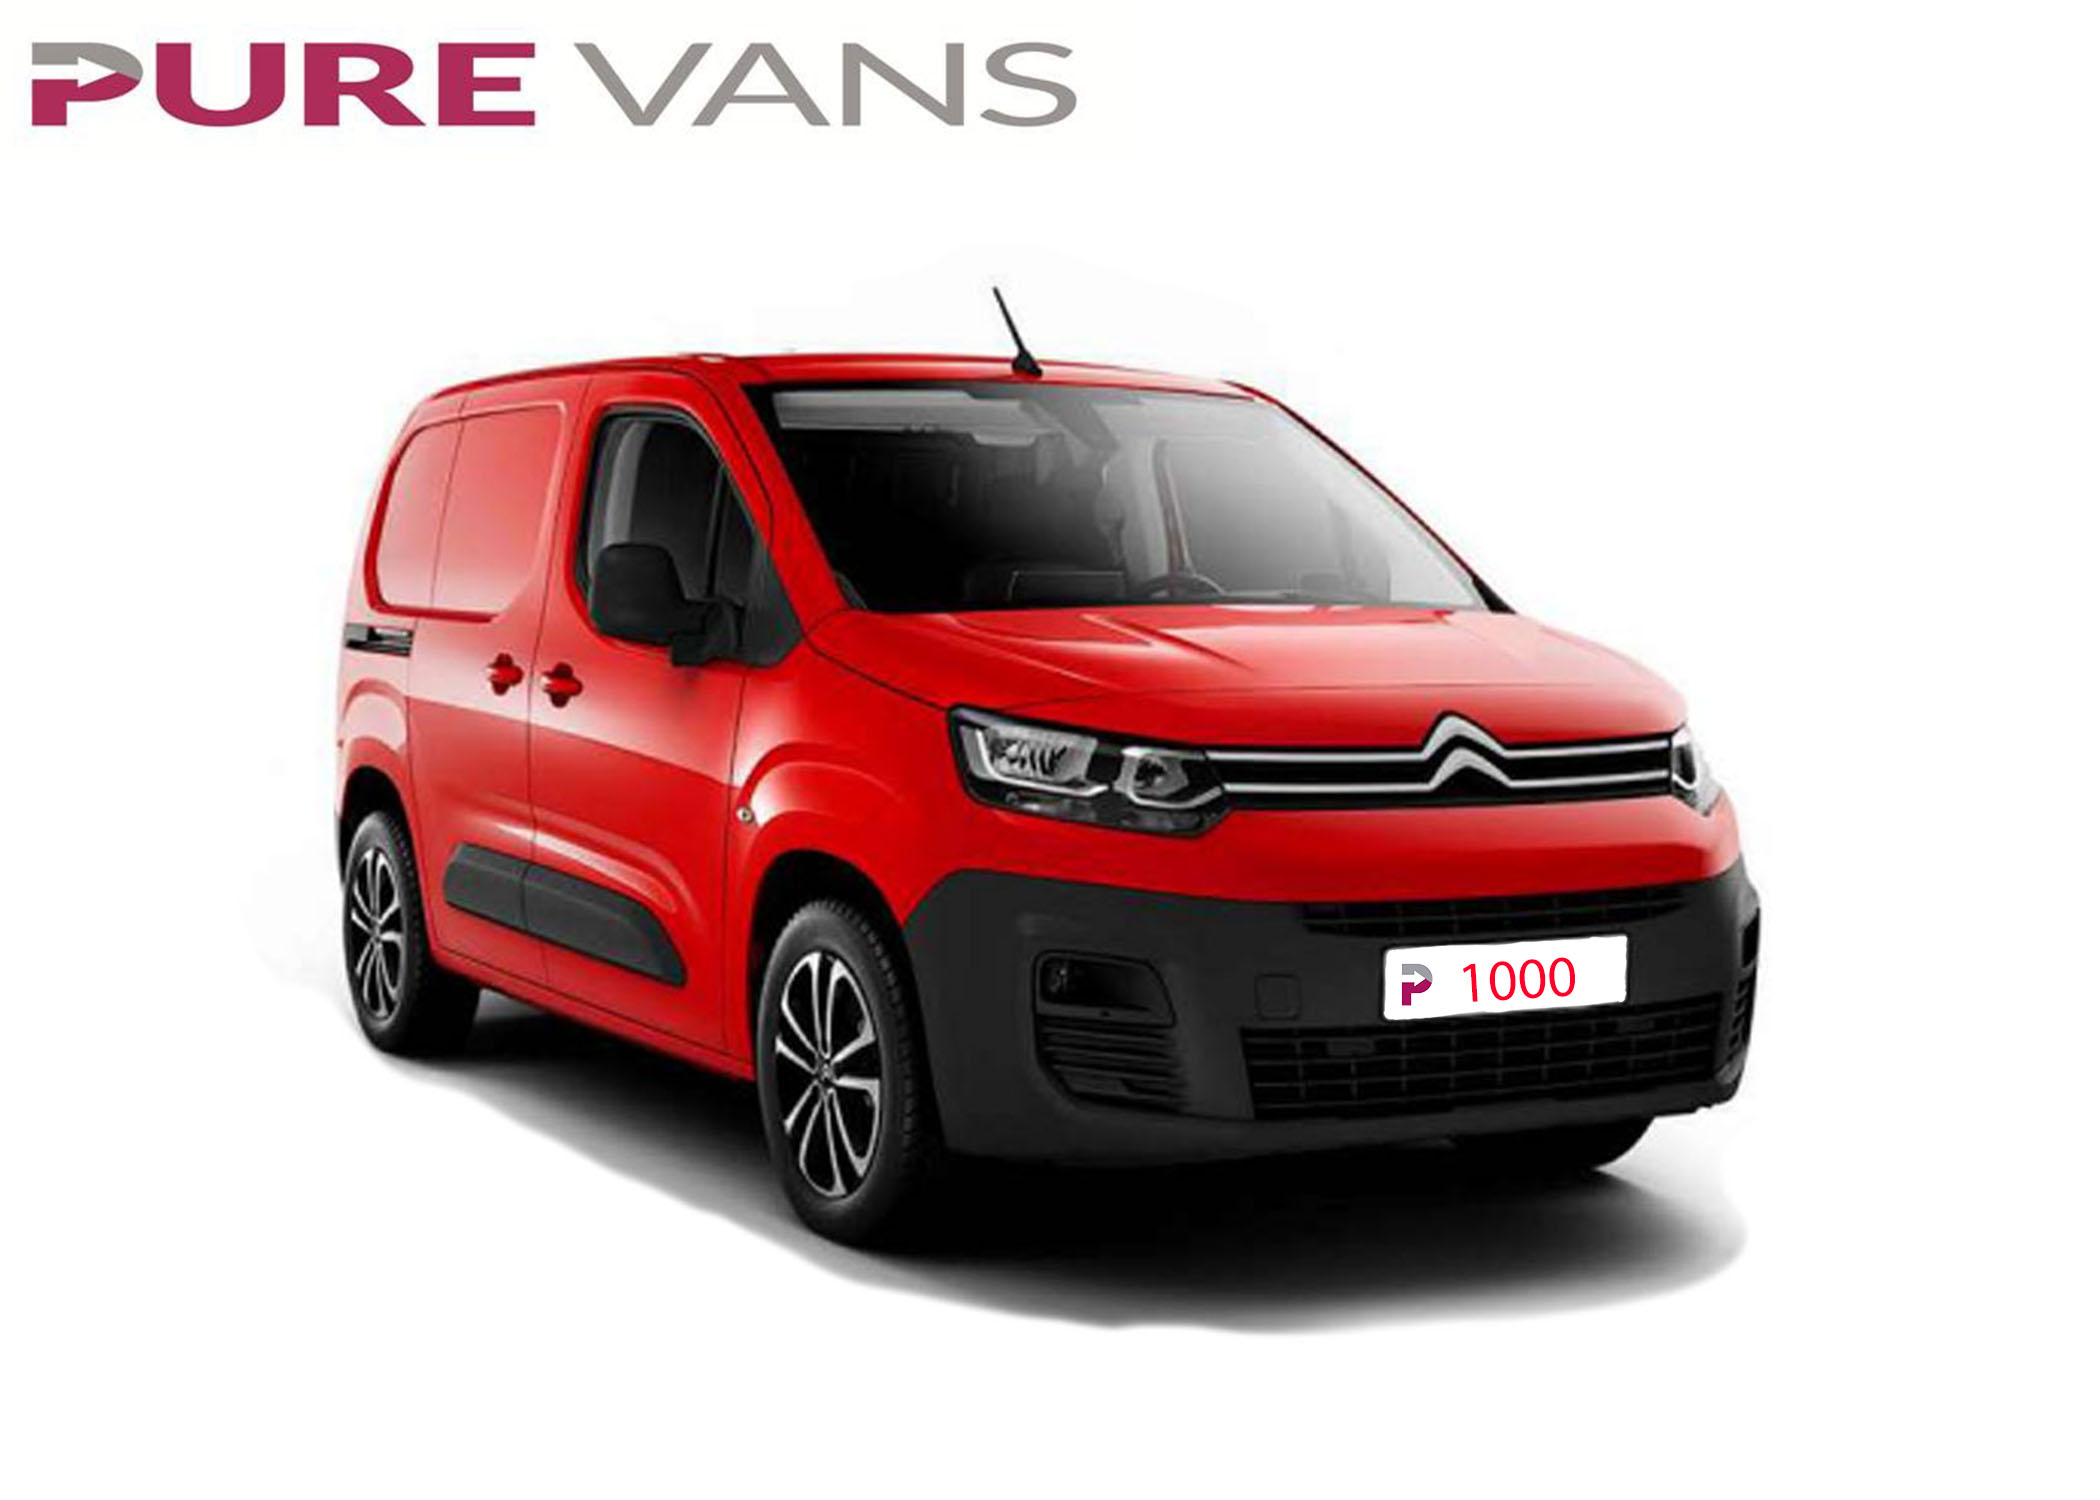 NEW MODEL CITROEN BERLINGO 1000 BHDI 75PS ENTERPRISE front side view.jpg